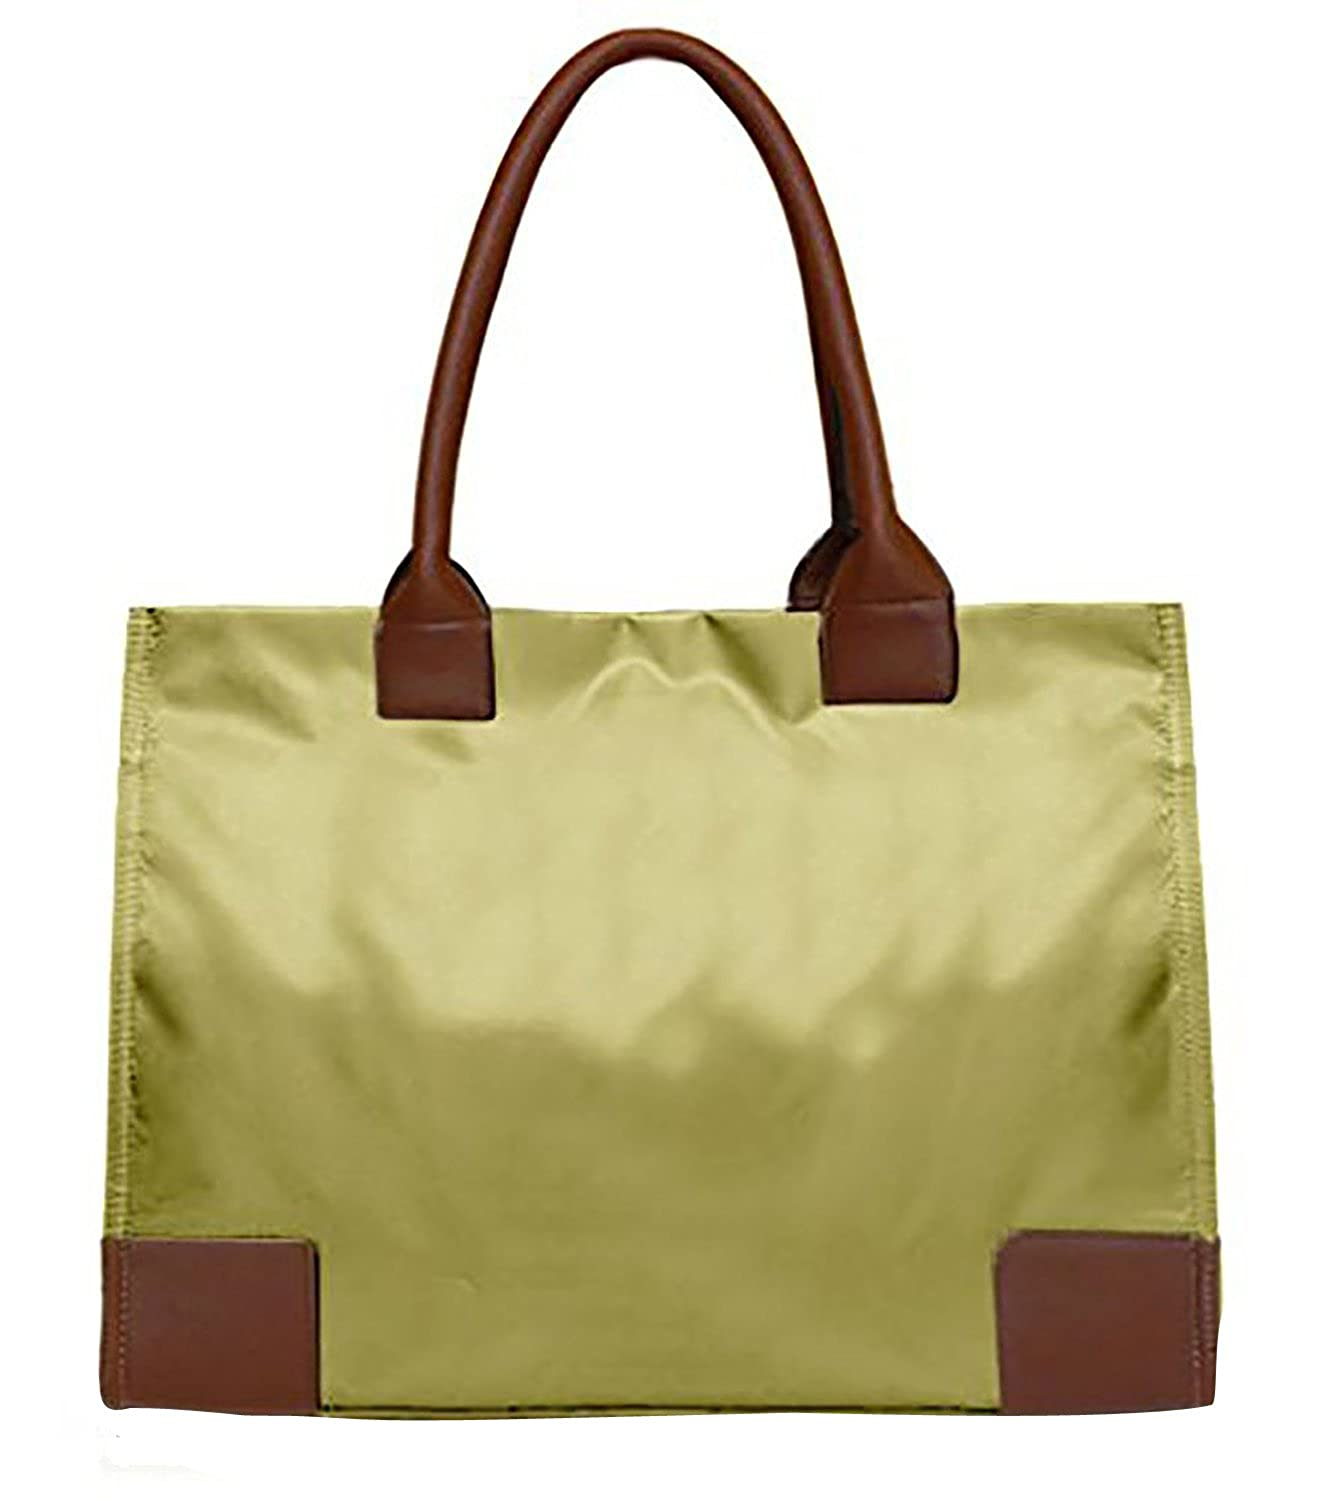 Peach Couture Luxury Nylon Waterproof Solid Shoulder Tote Bag Purse